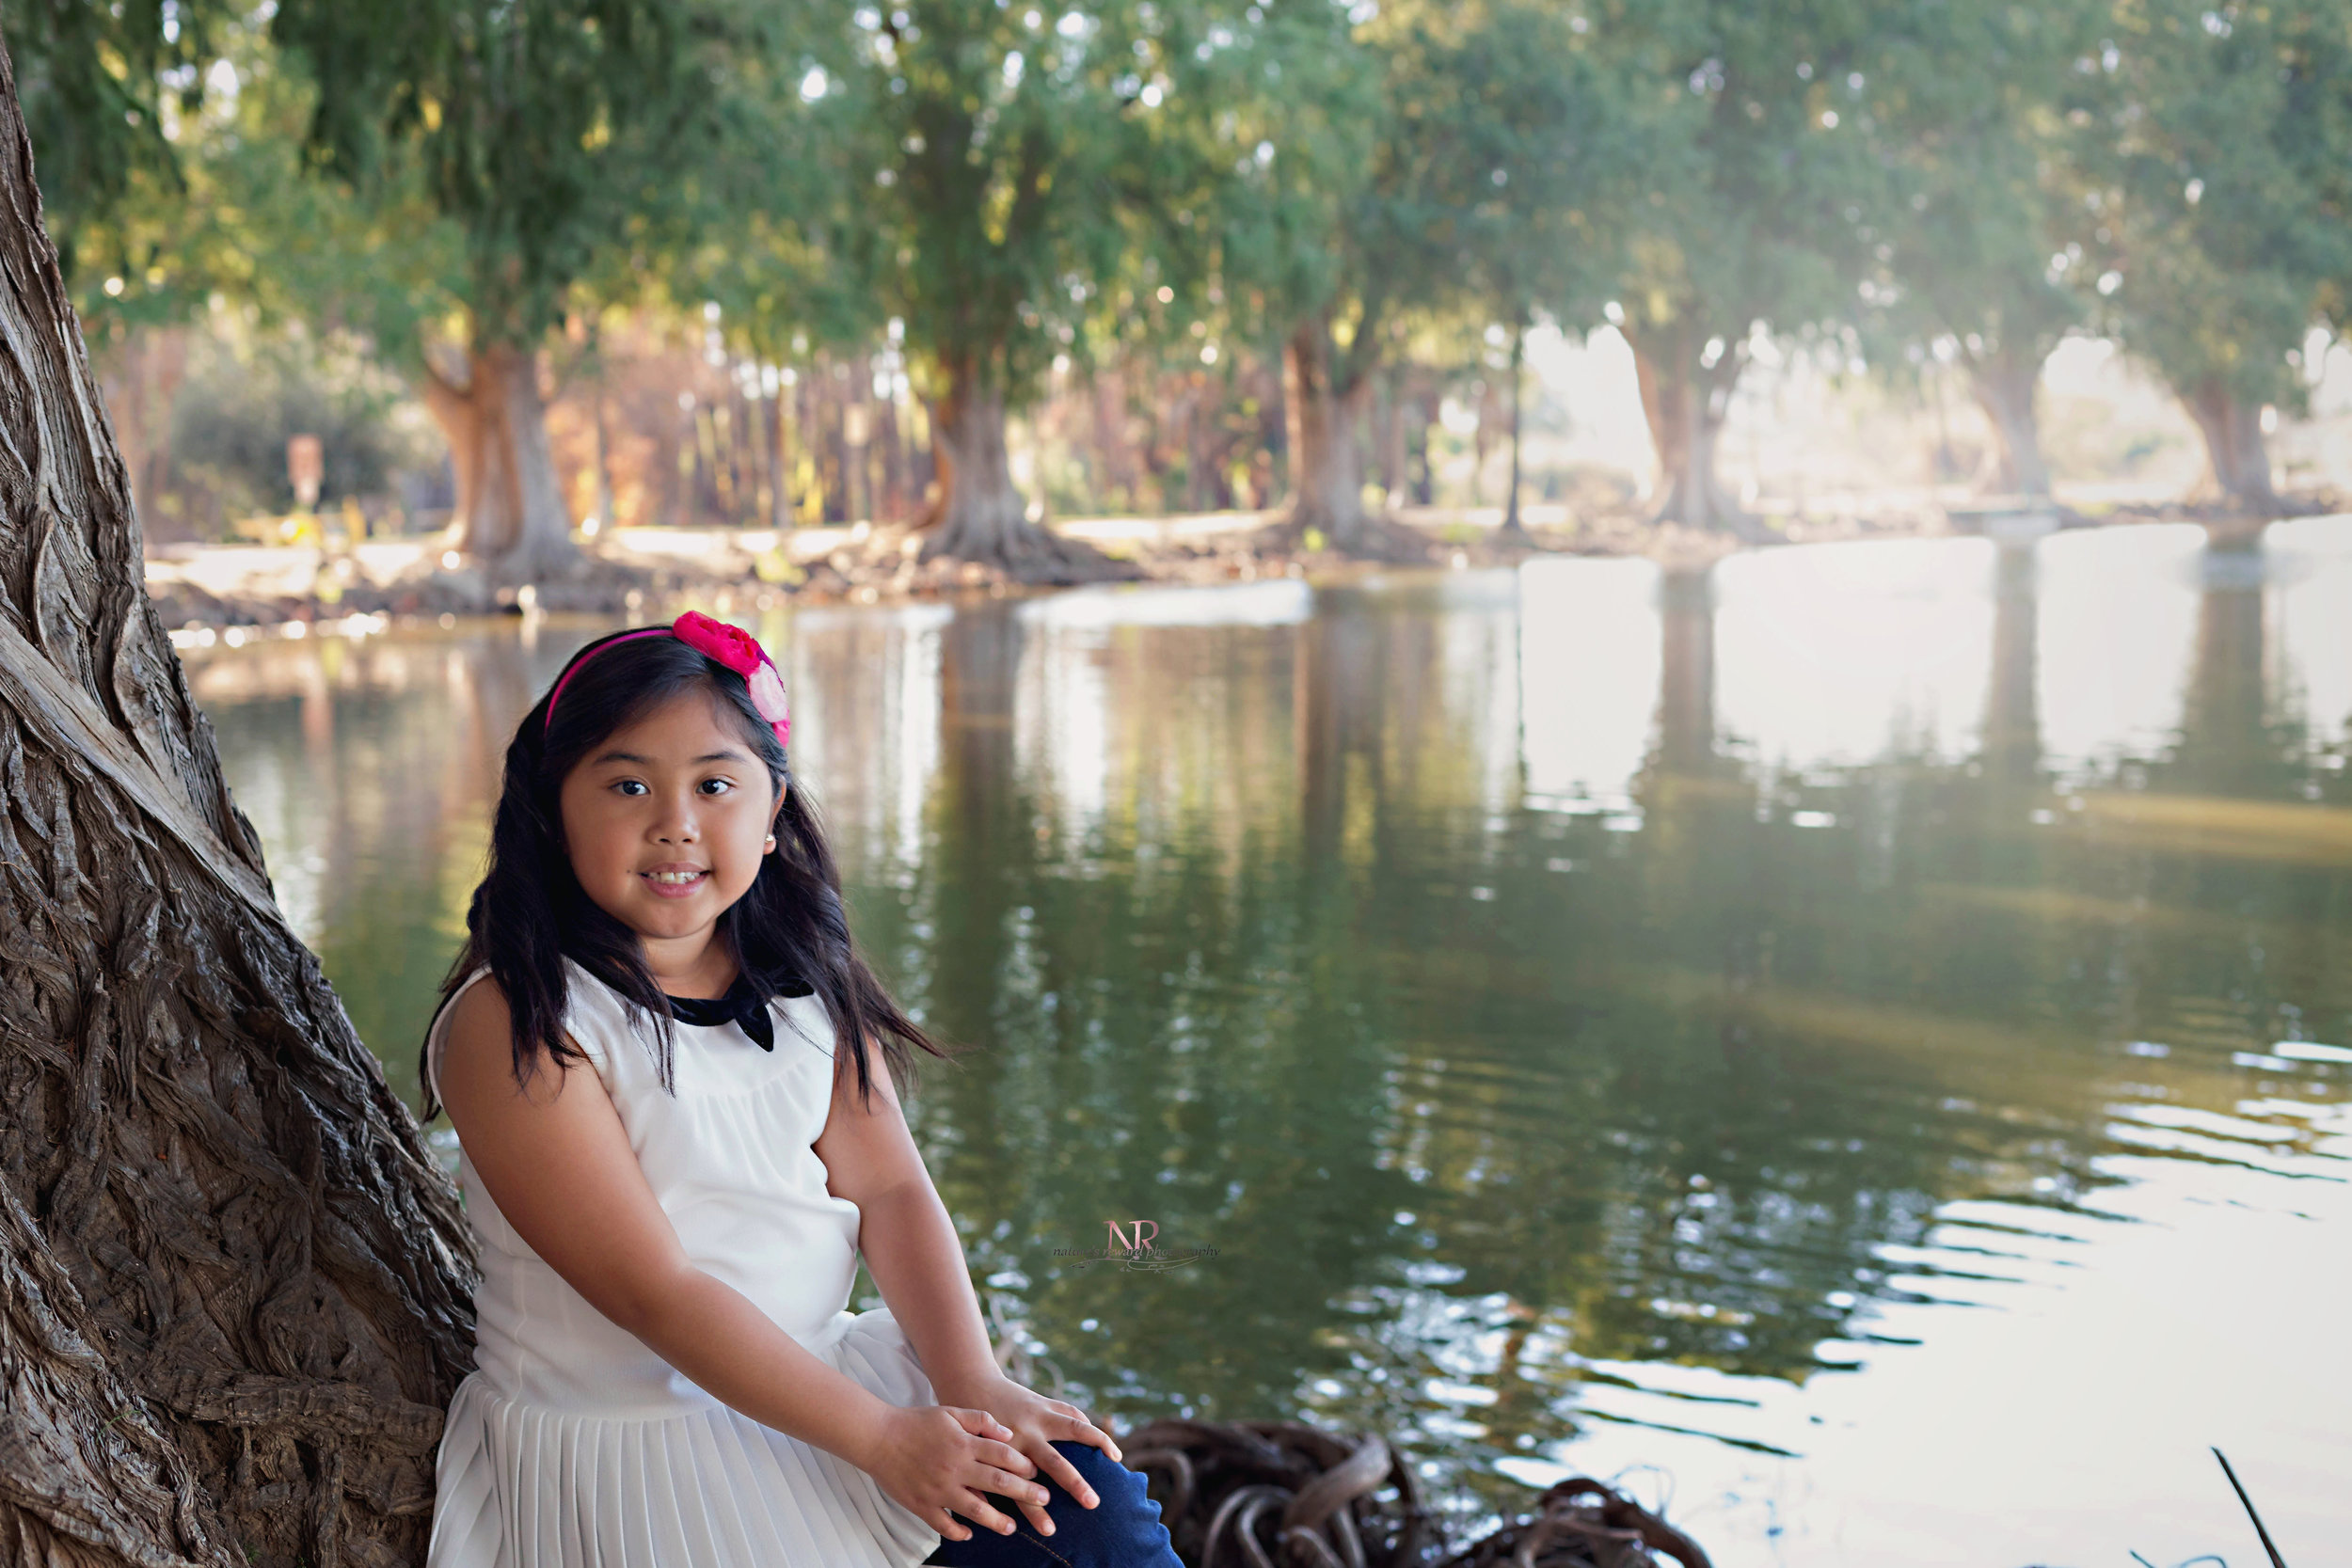 Sweet Daughter next to the water